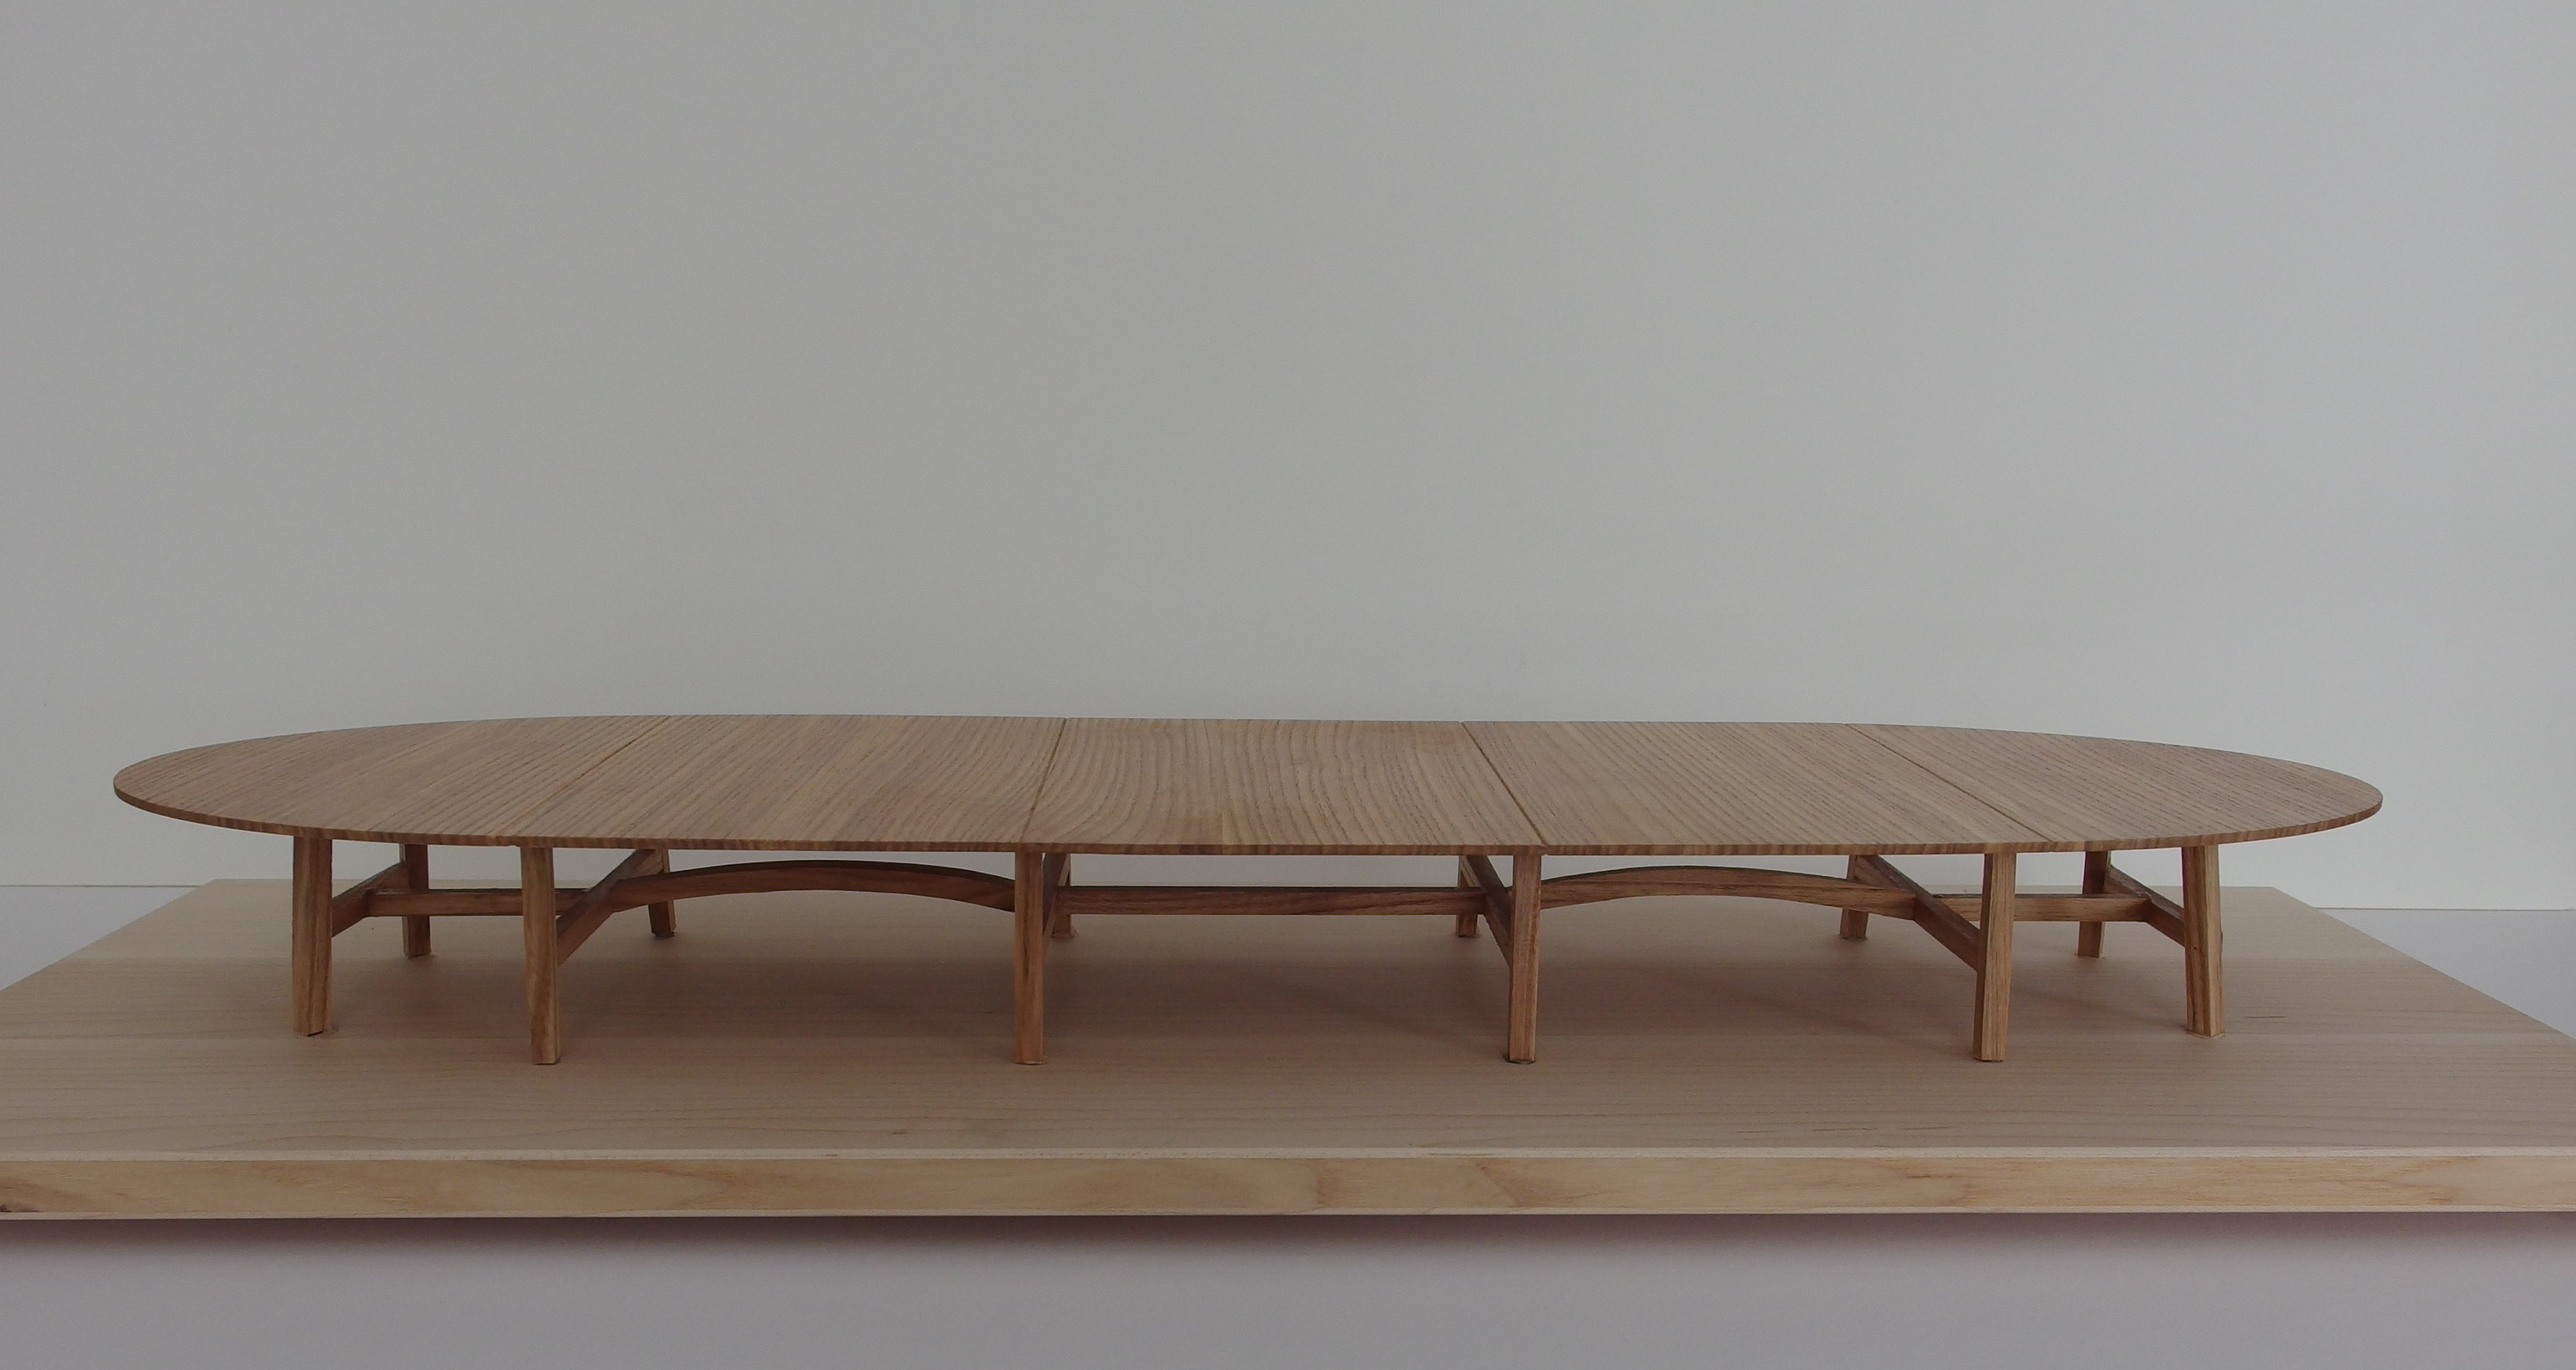 Appleby College Table mockup